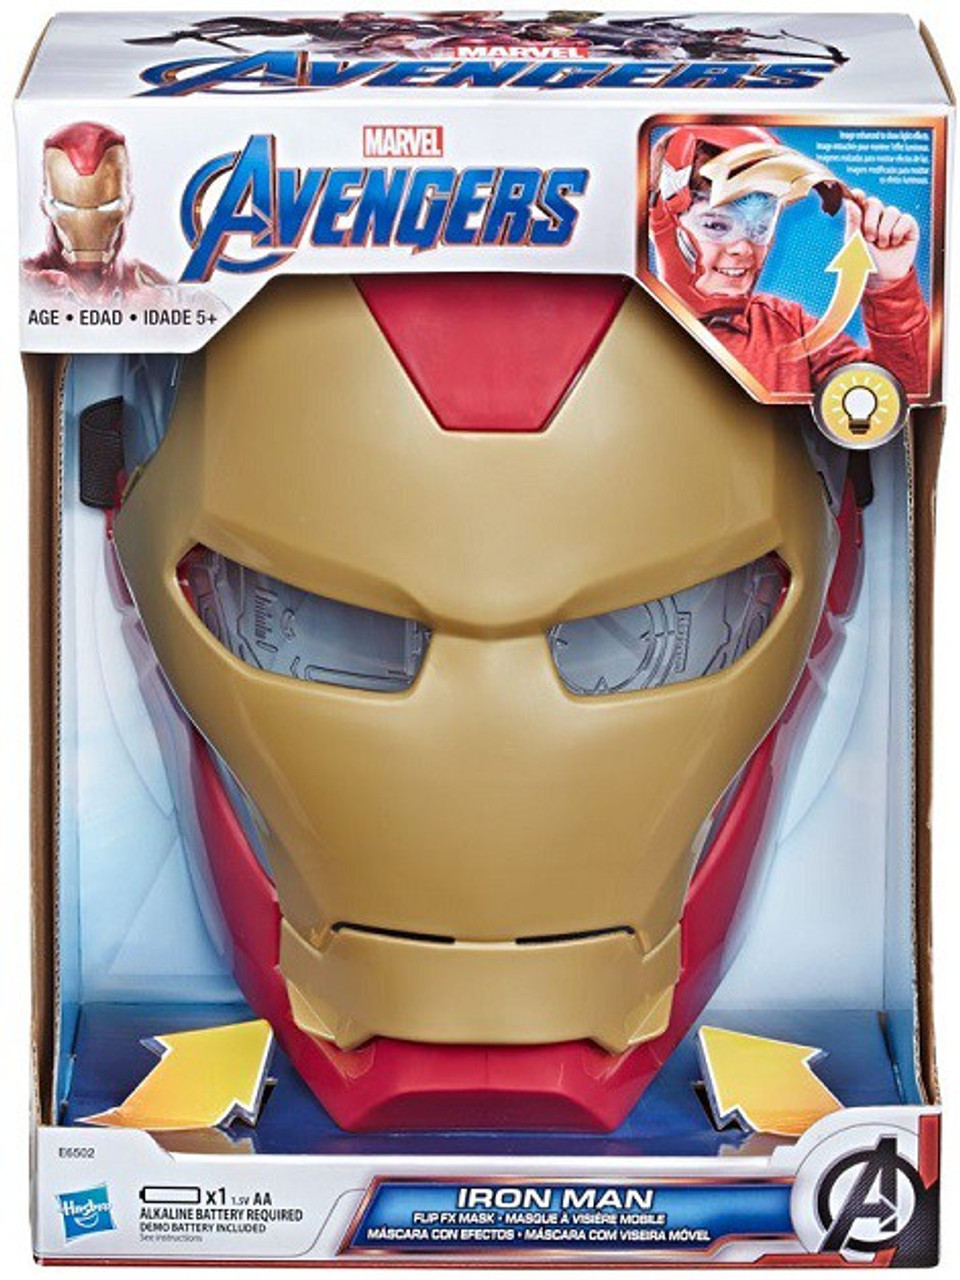 Toys Lights Up Avengers Marvel Legends Gear Iron Man Replica Electronic Helmet